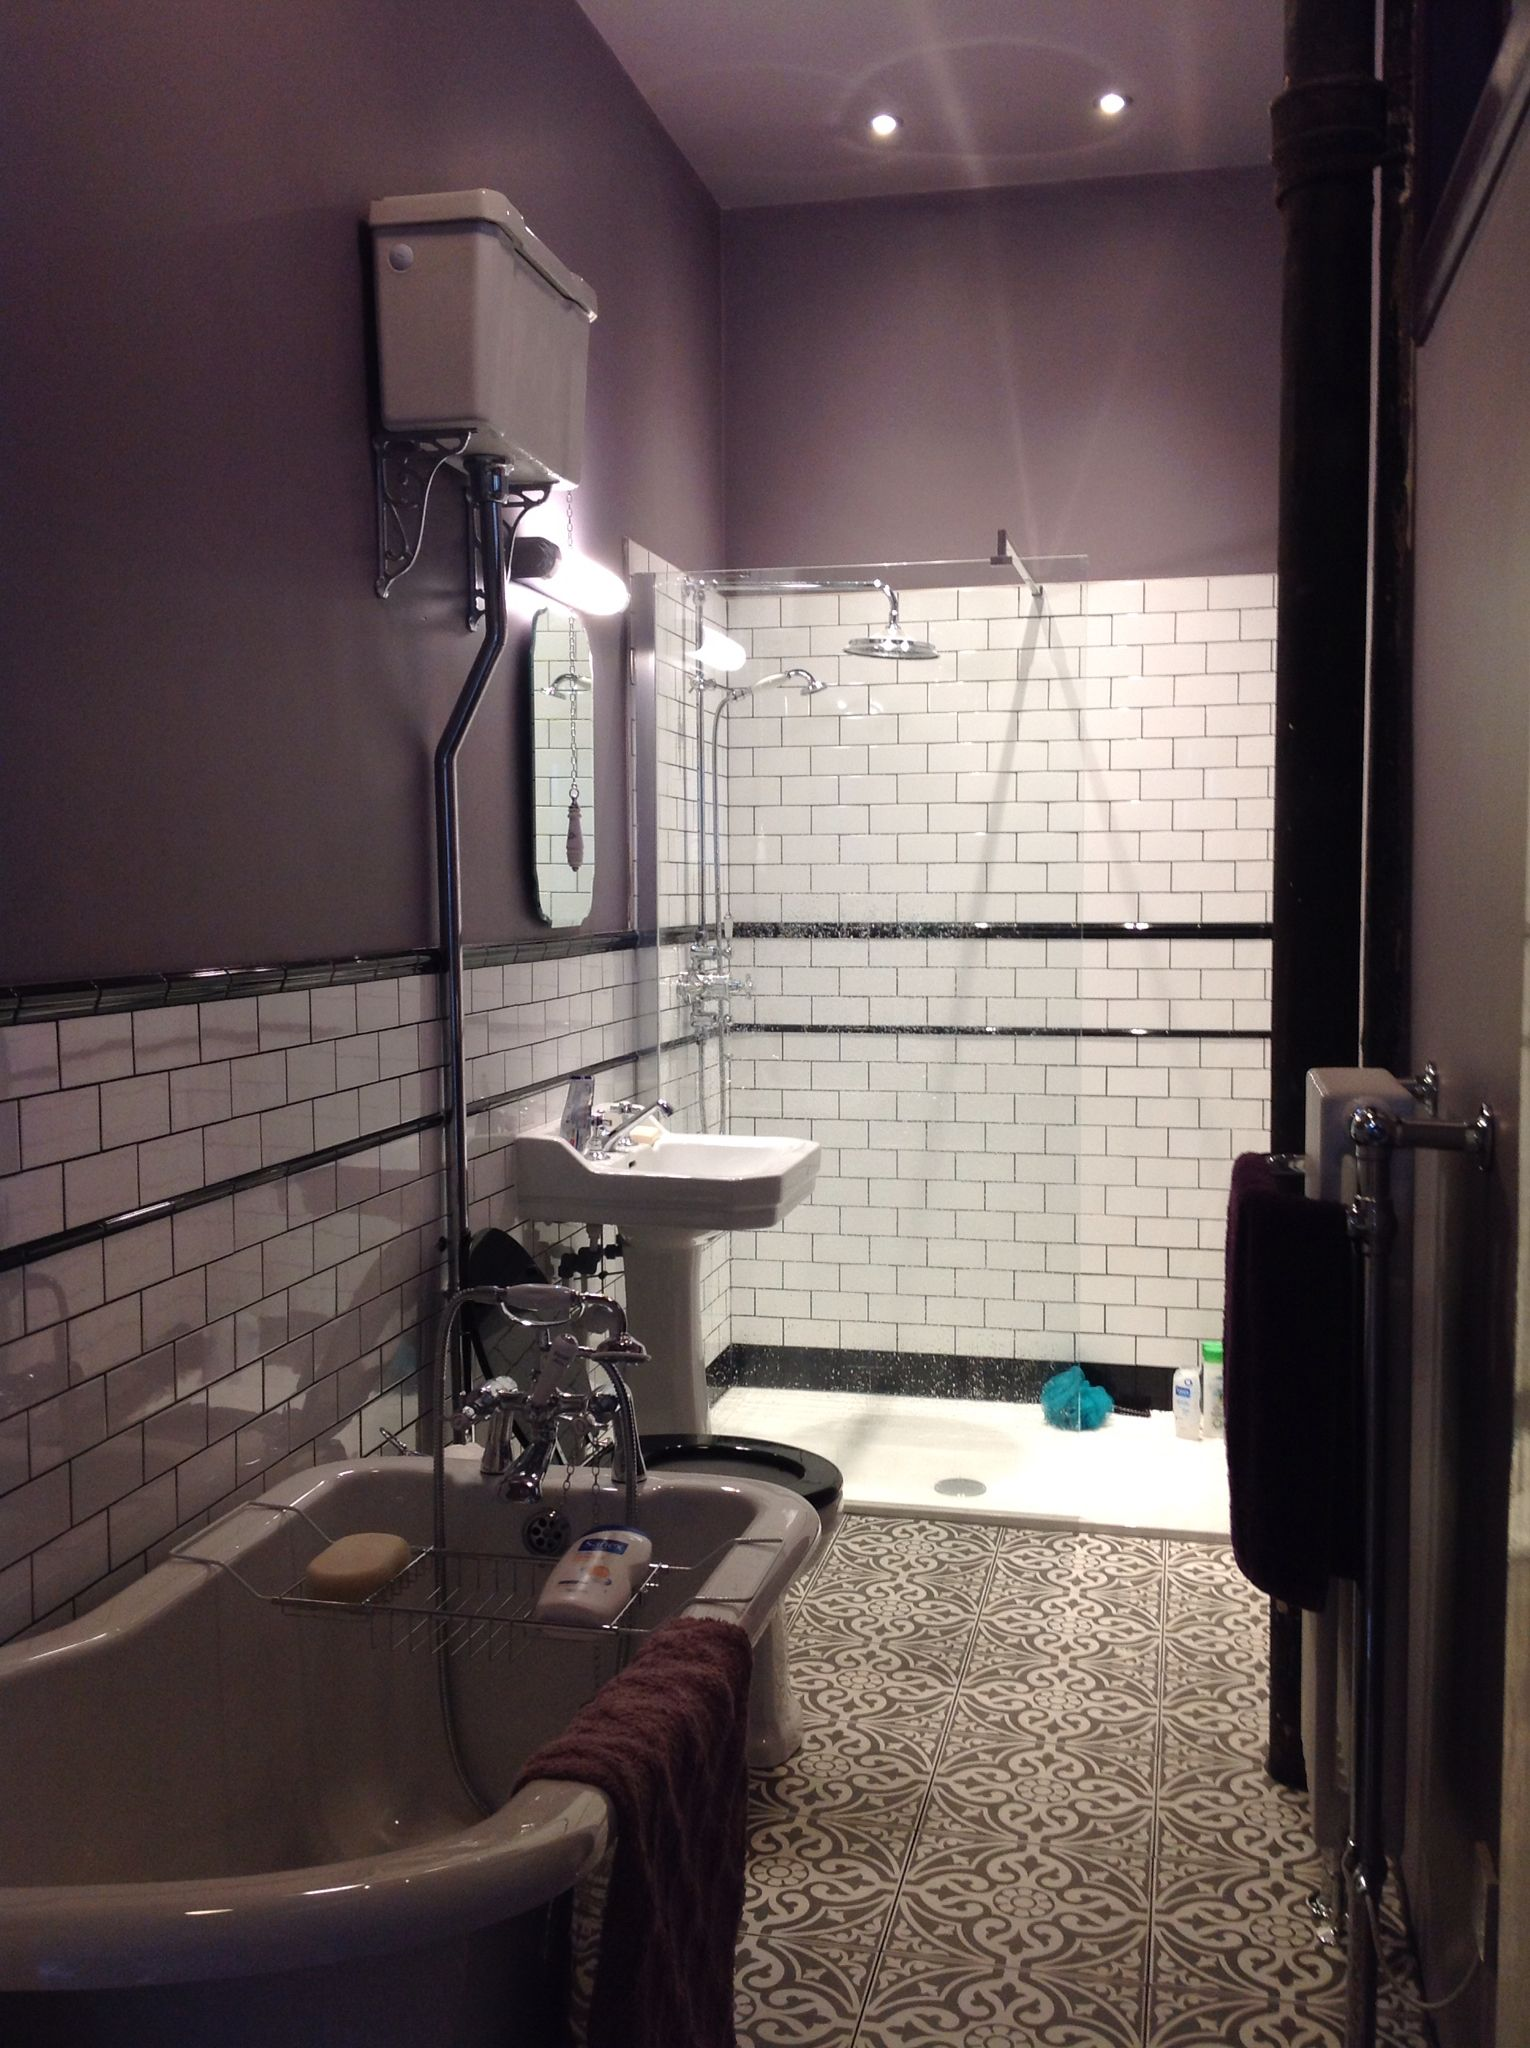 Bathroom finally in full use farrow ball brassica subway farrow ball brassica subway tiles dailygadgetfo Image collections